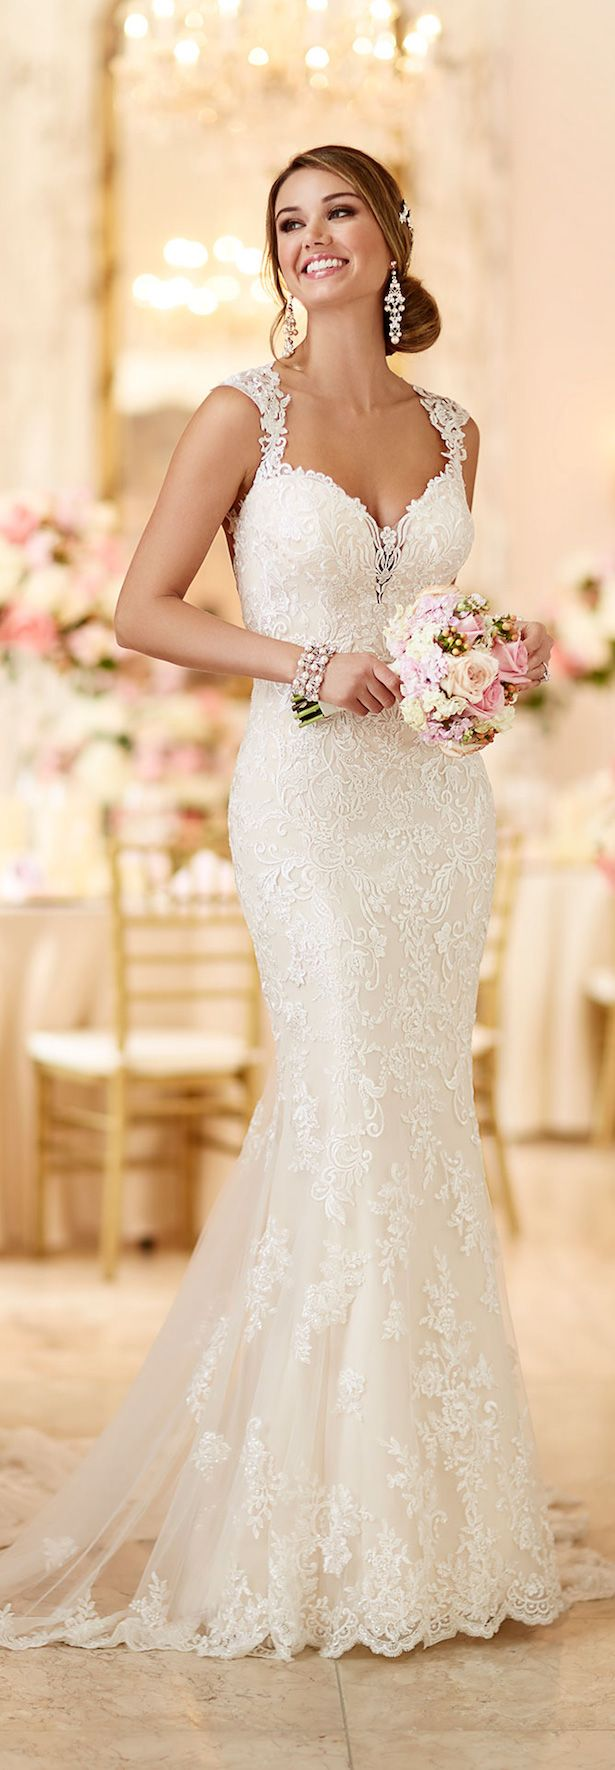 Stella york spring 2016 bridal collection 2016 wedding dresses stella york spring 2016 bridal collection ombrellifo Choice Image